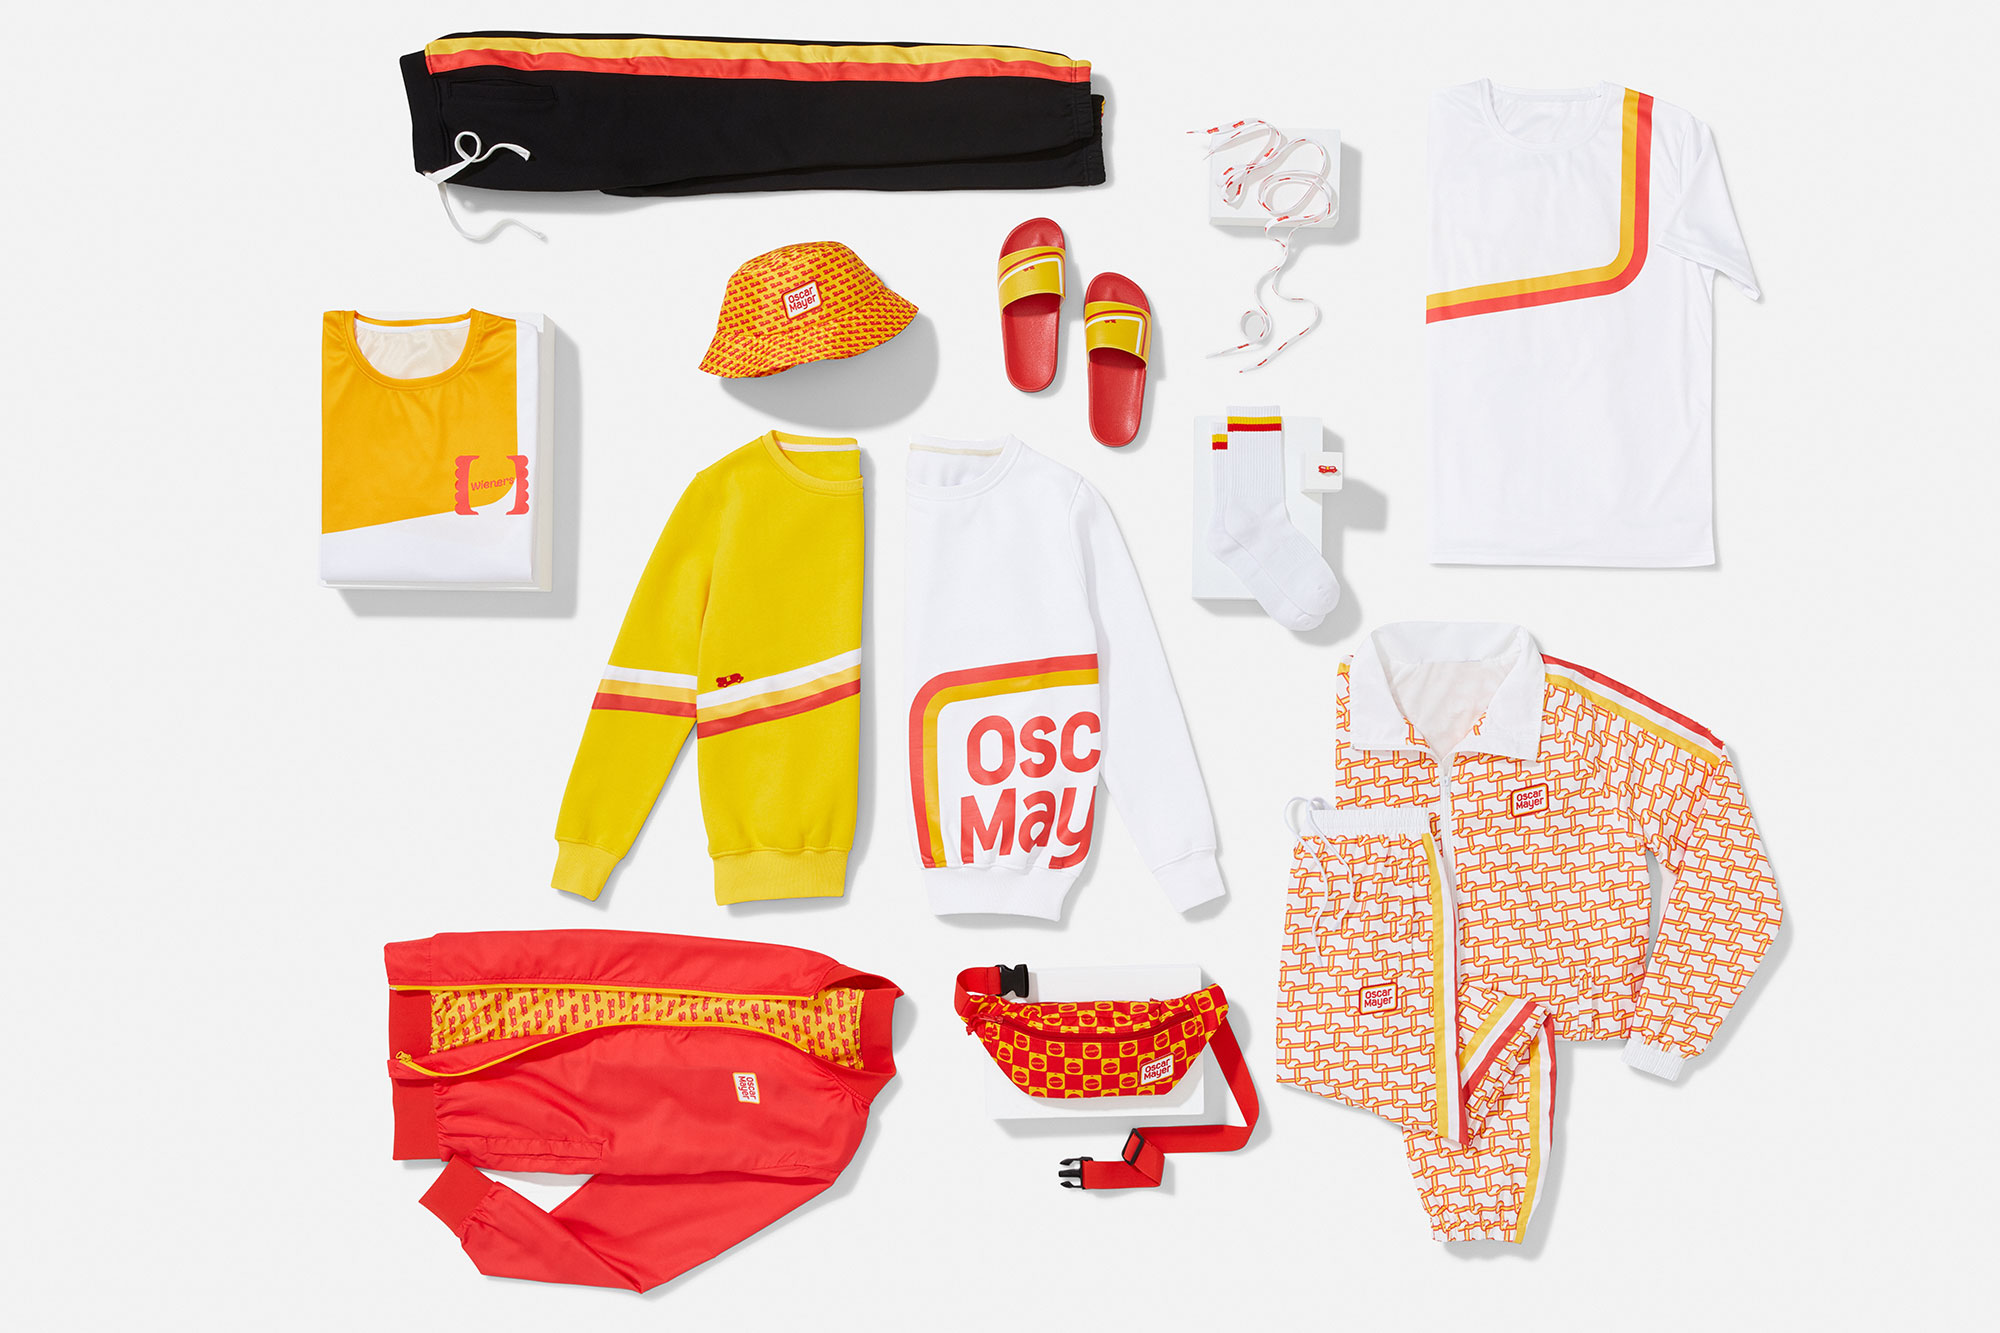 Oscar Mayer Street Meat capsule collection